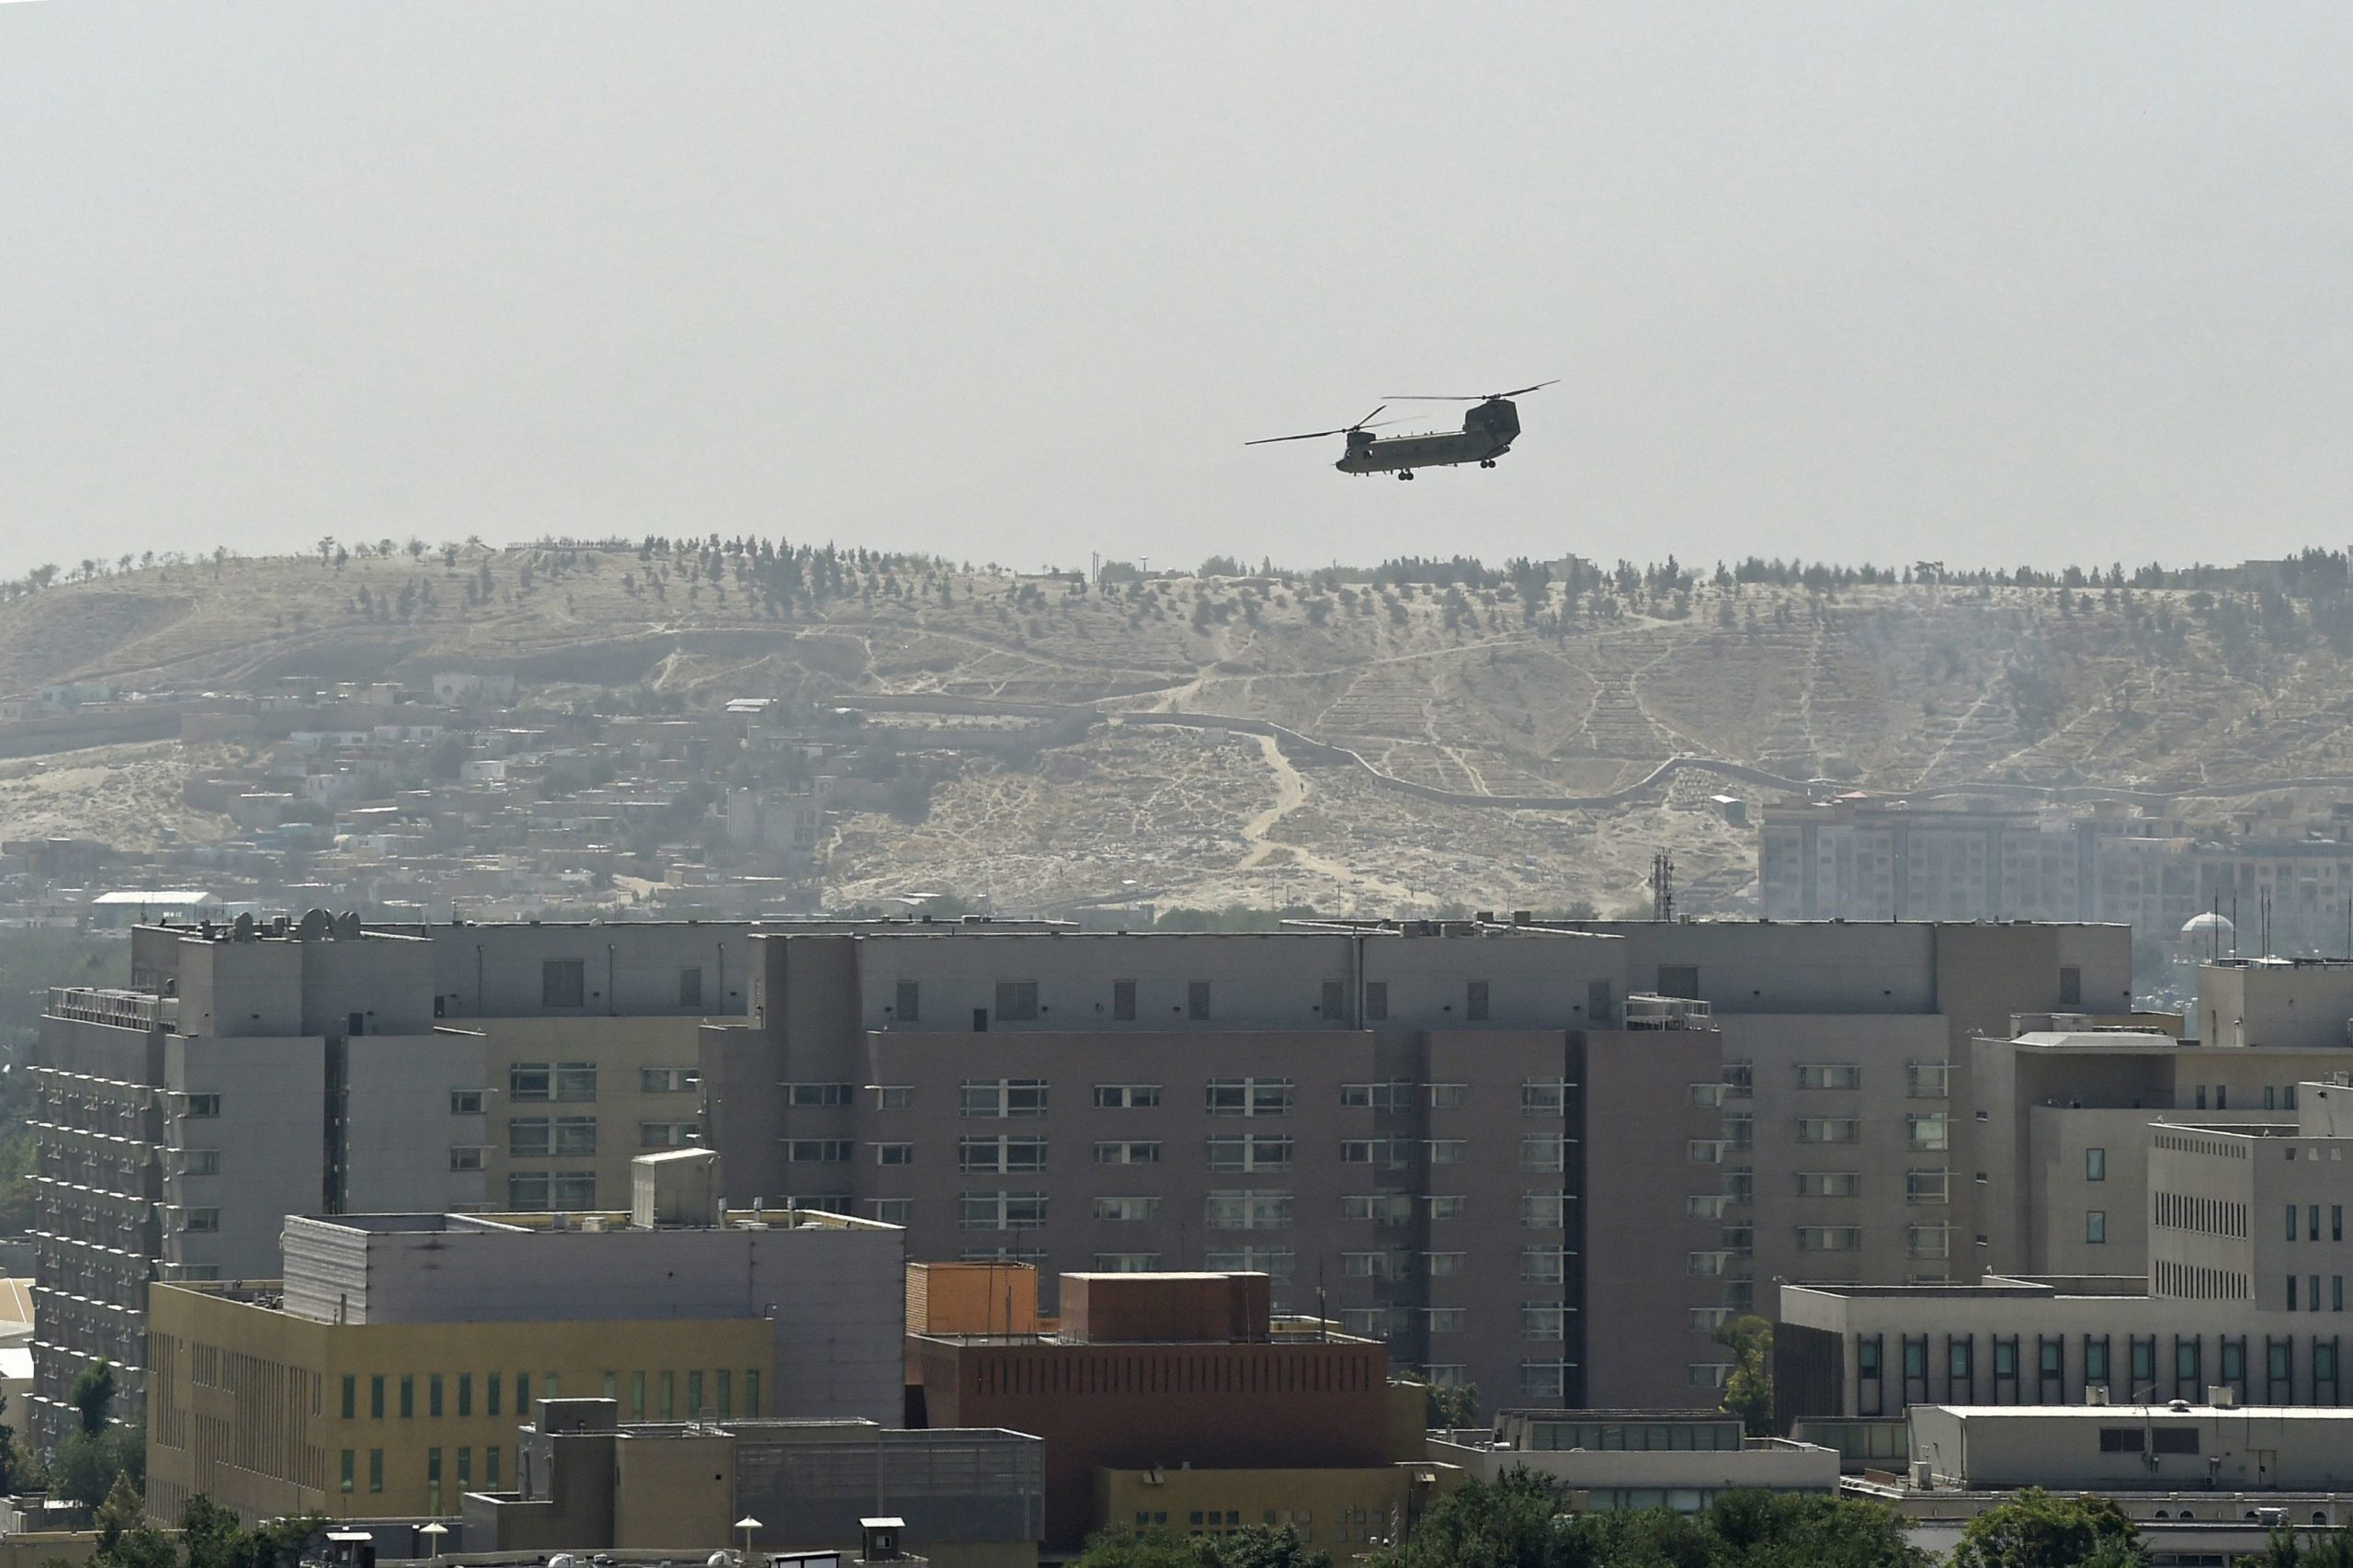 TOPSHOT - A U.S. Chinook military helicopter flies above the US embassy in Kabul on August 15, 2021. Several hundred employees of the US embassy in Kabul have been evacuated from Afghanistan, a US defense official said on August 15, 2021, as the Taliban entered the capital. (Photo by Wakil KOHSAR / AFP) (Photo by WAKIL KOHSAR/AFP via Getty Images)